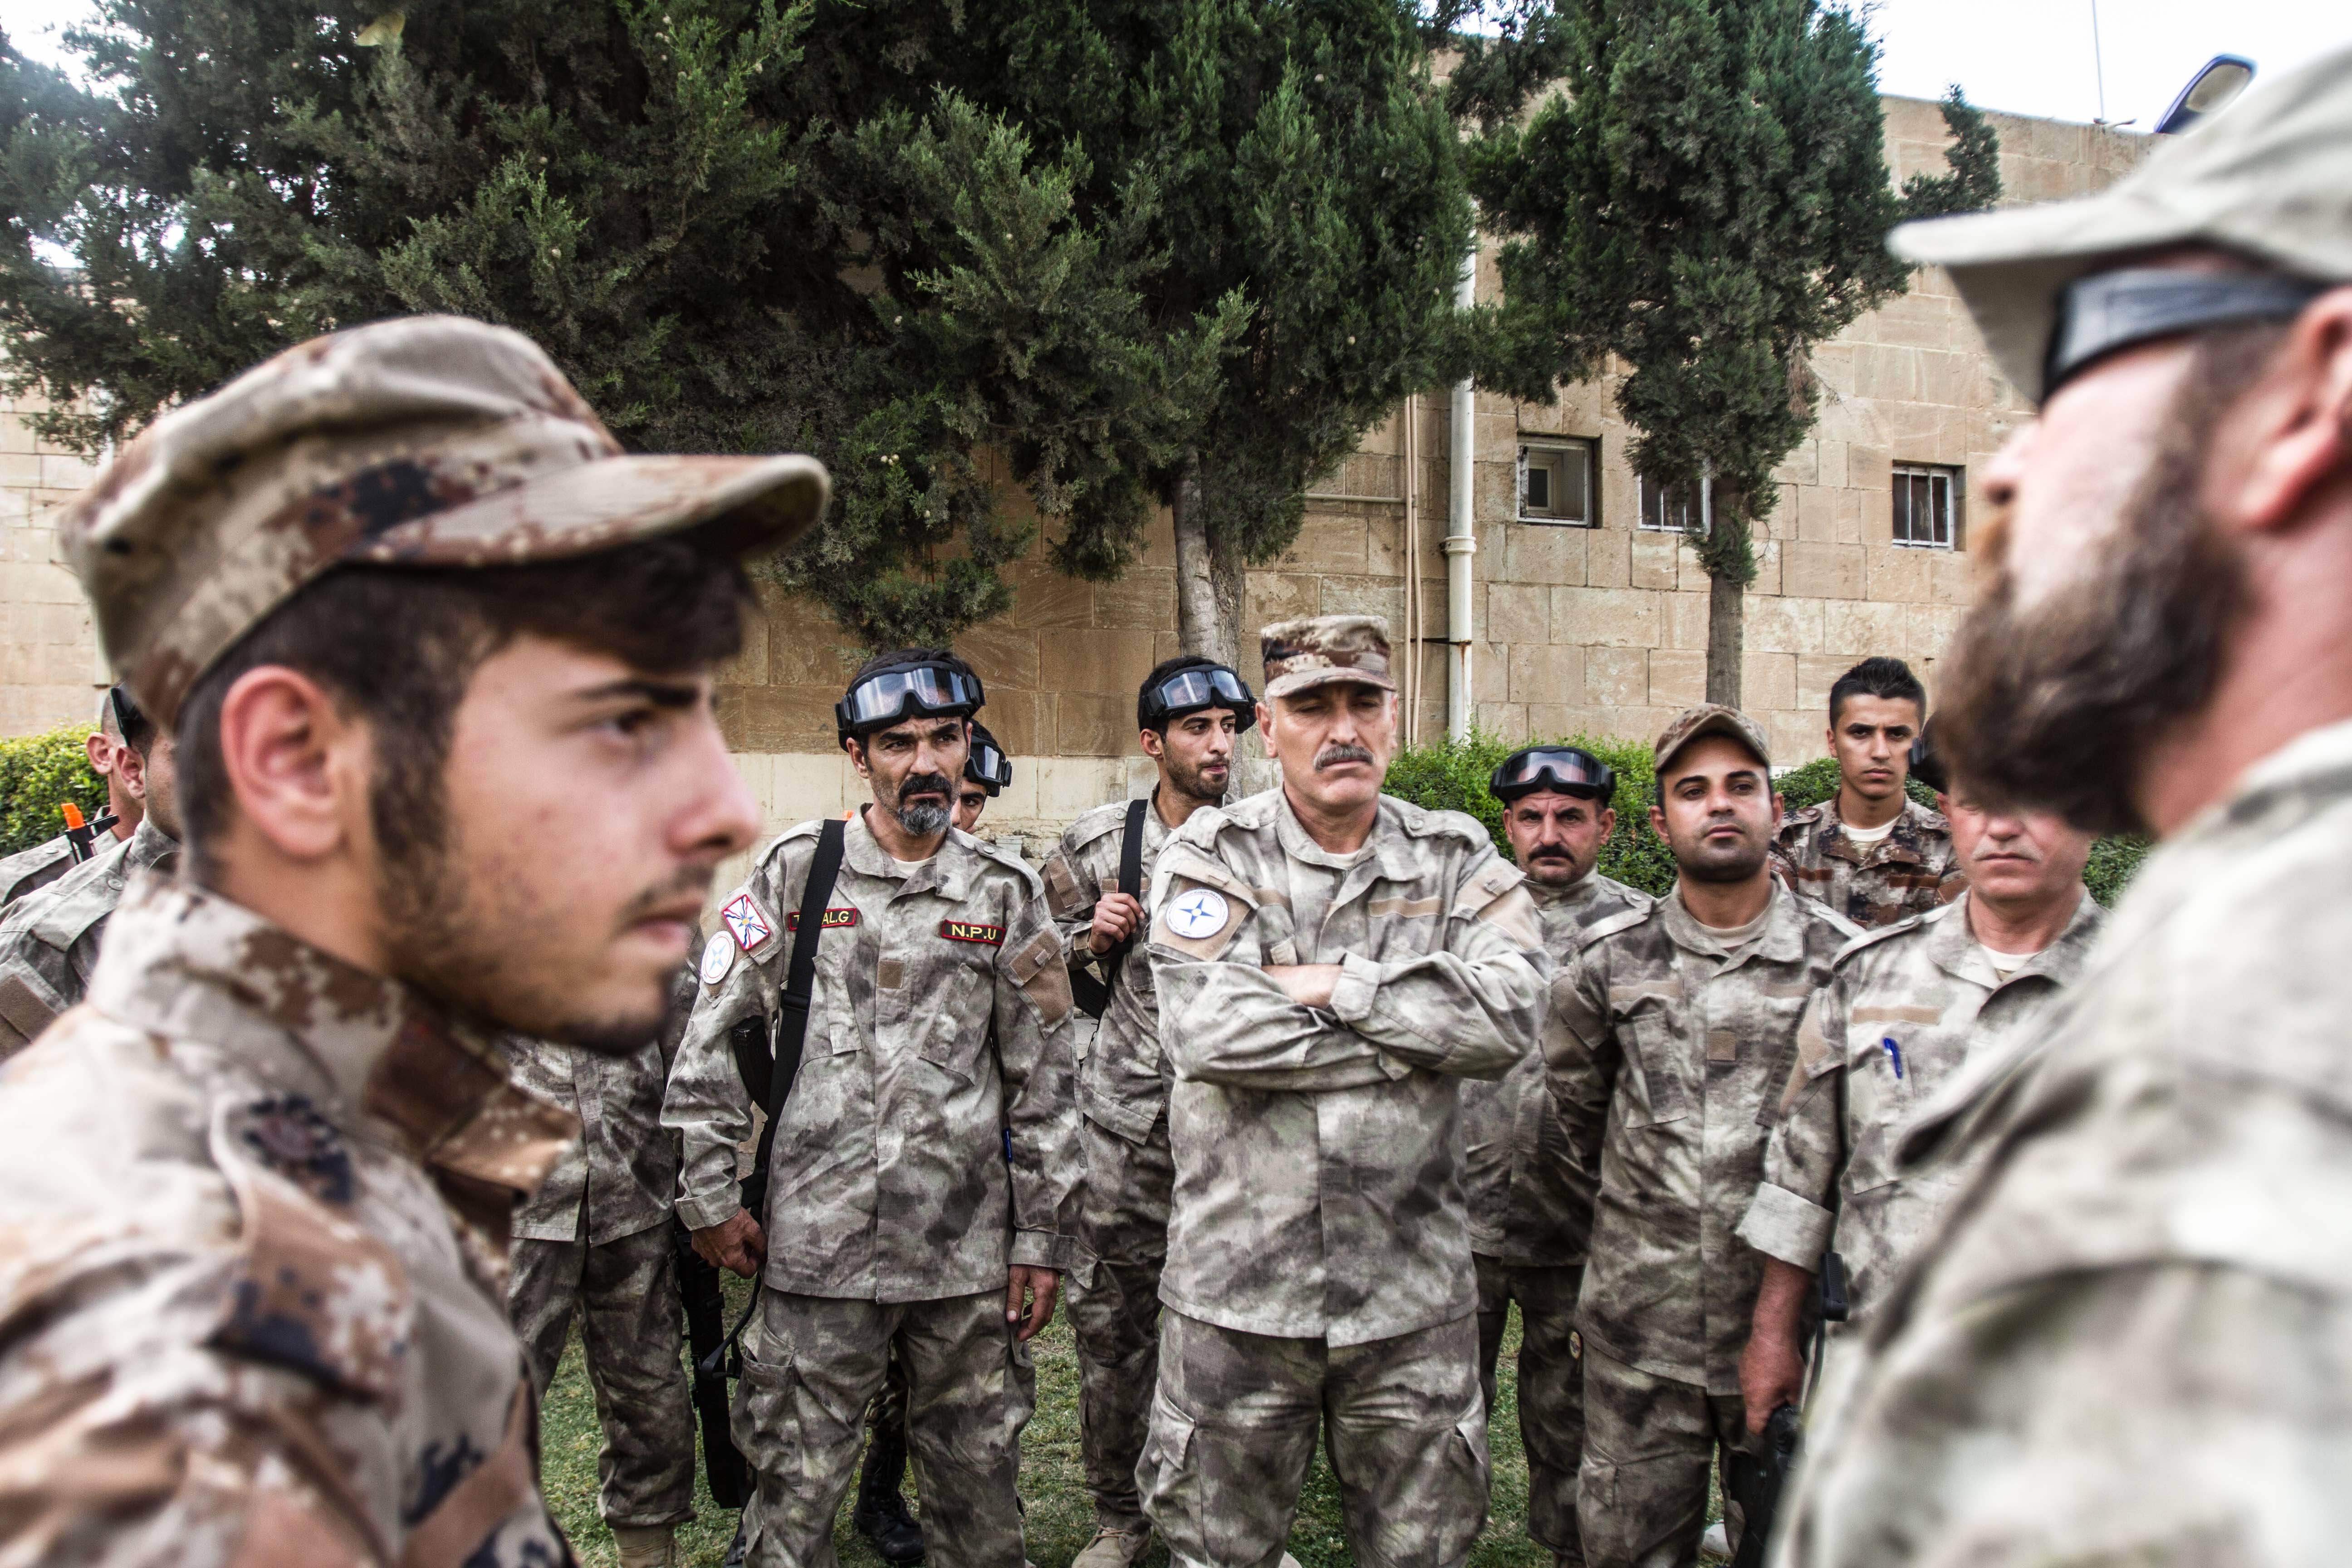 Tactical training briefing for the defensive force in the city of Dohuk. © Jan Husar